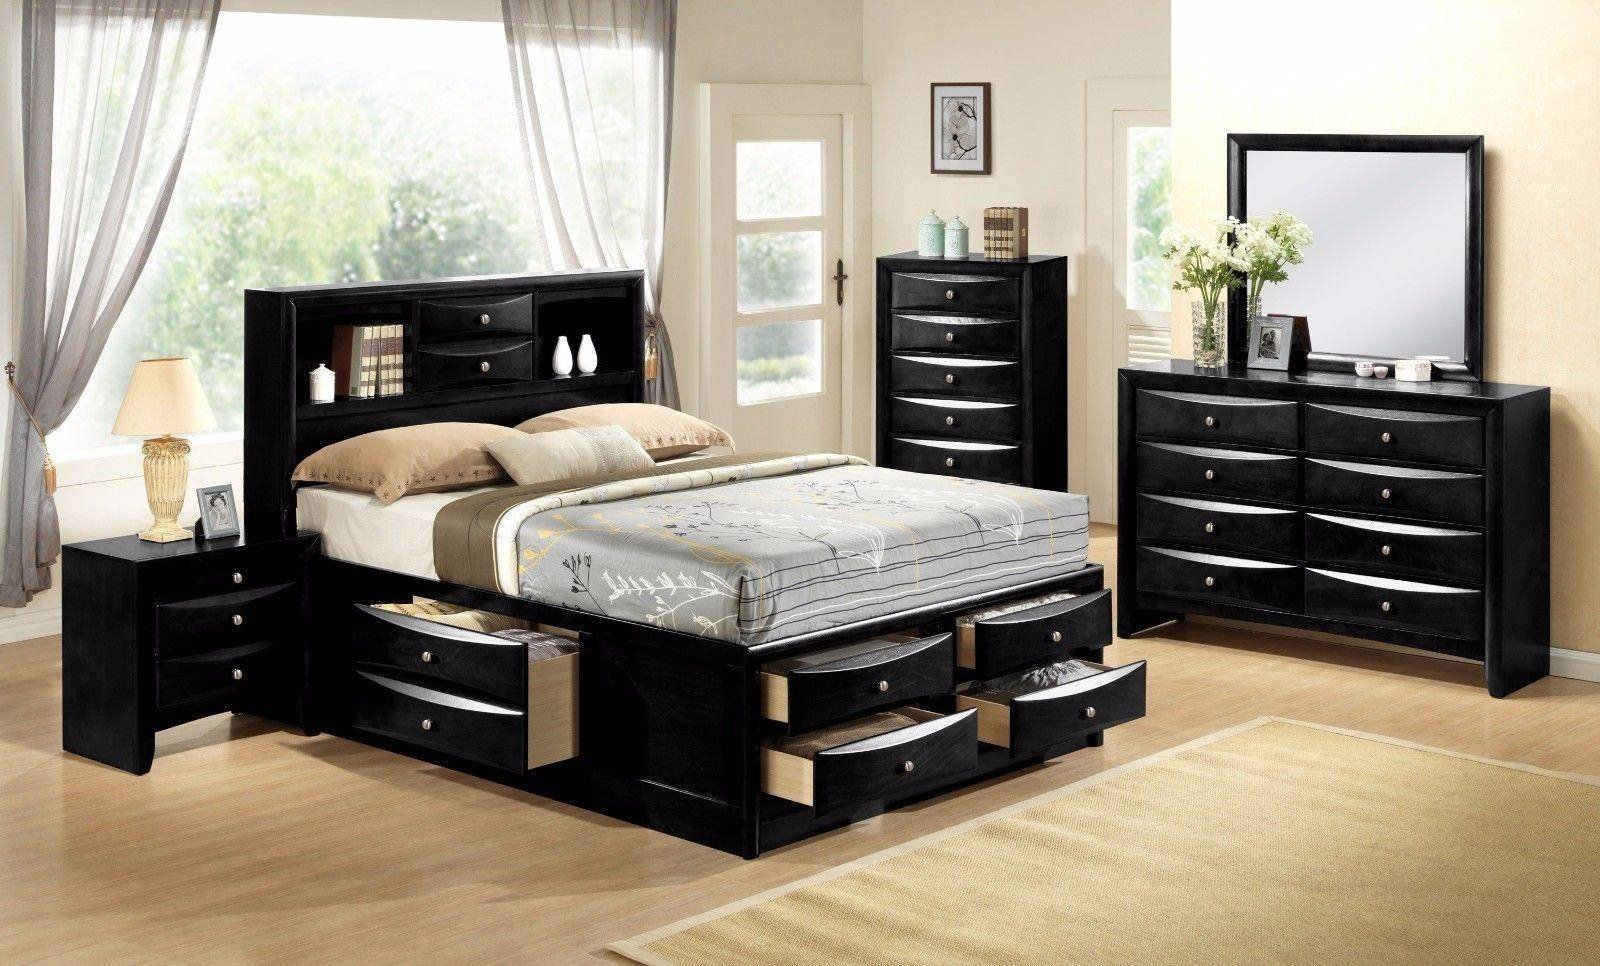 King Size Bedroom Set with Mattress Awesome Crown Mark B4285 Emily Modern Black Finish Storage King Size